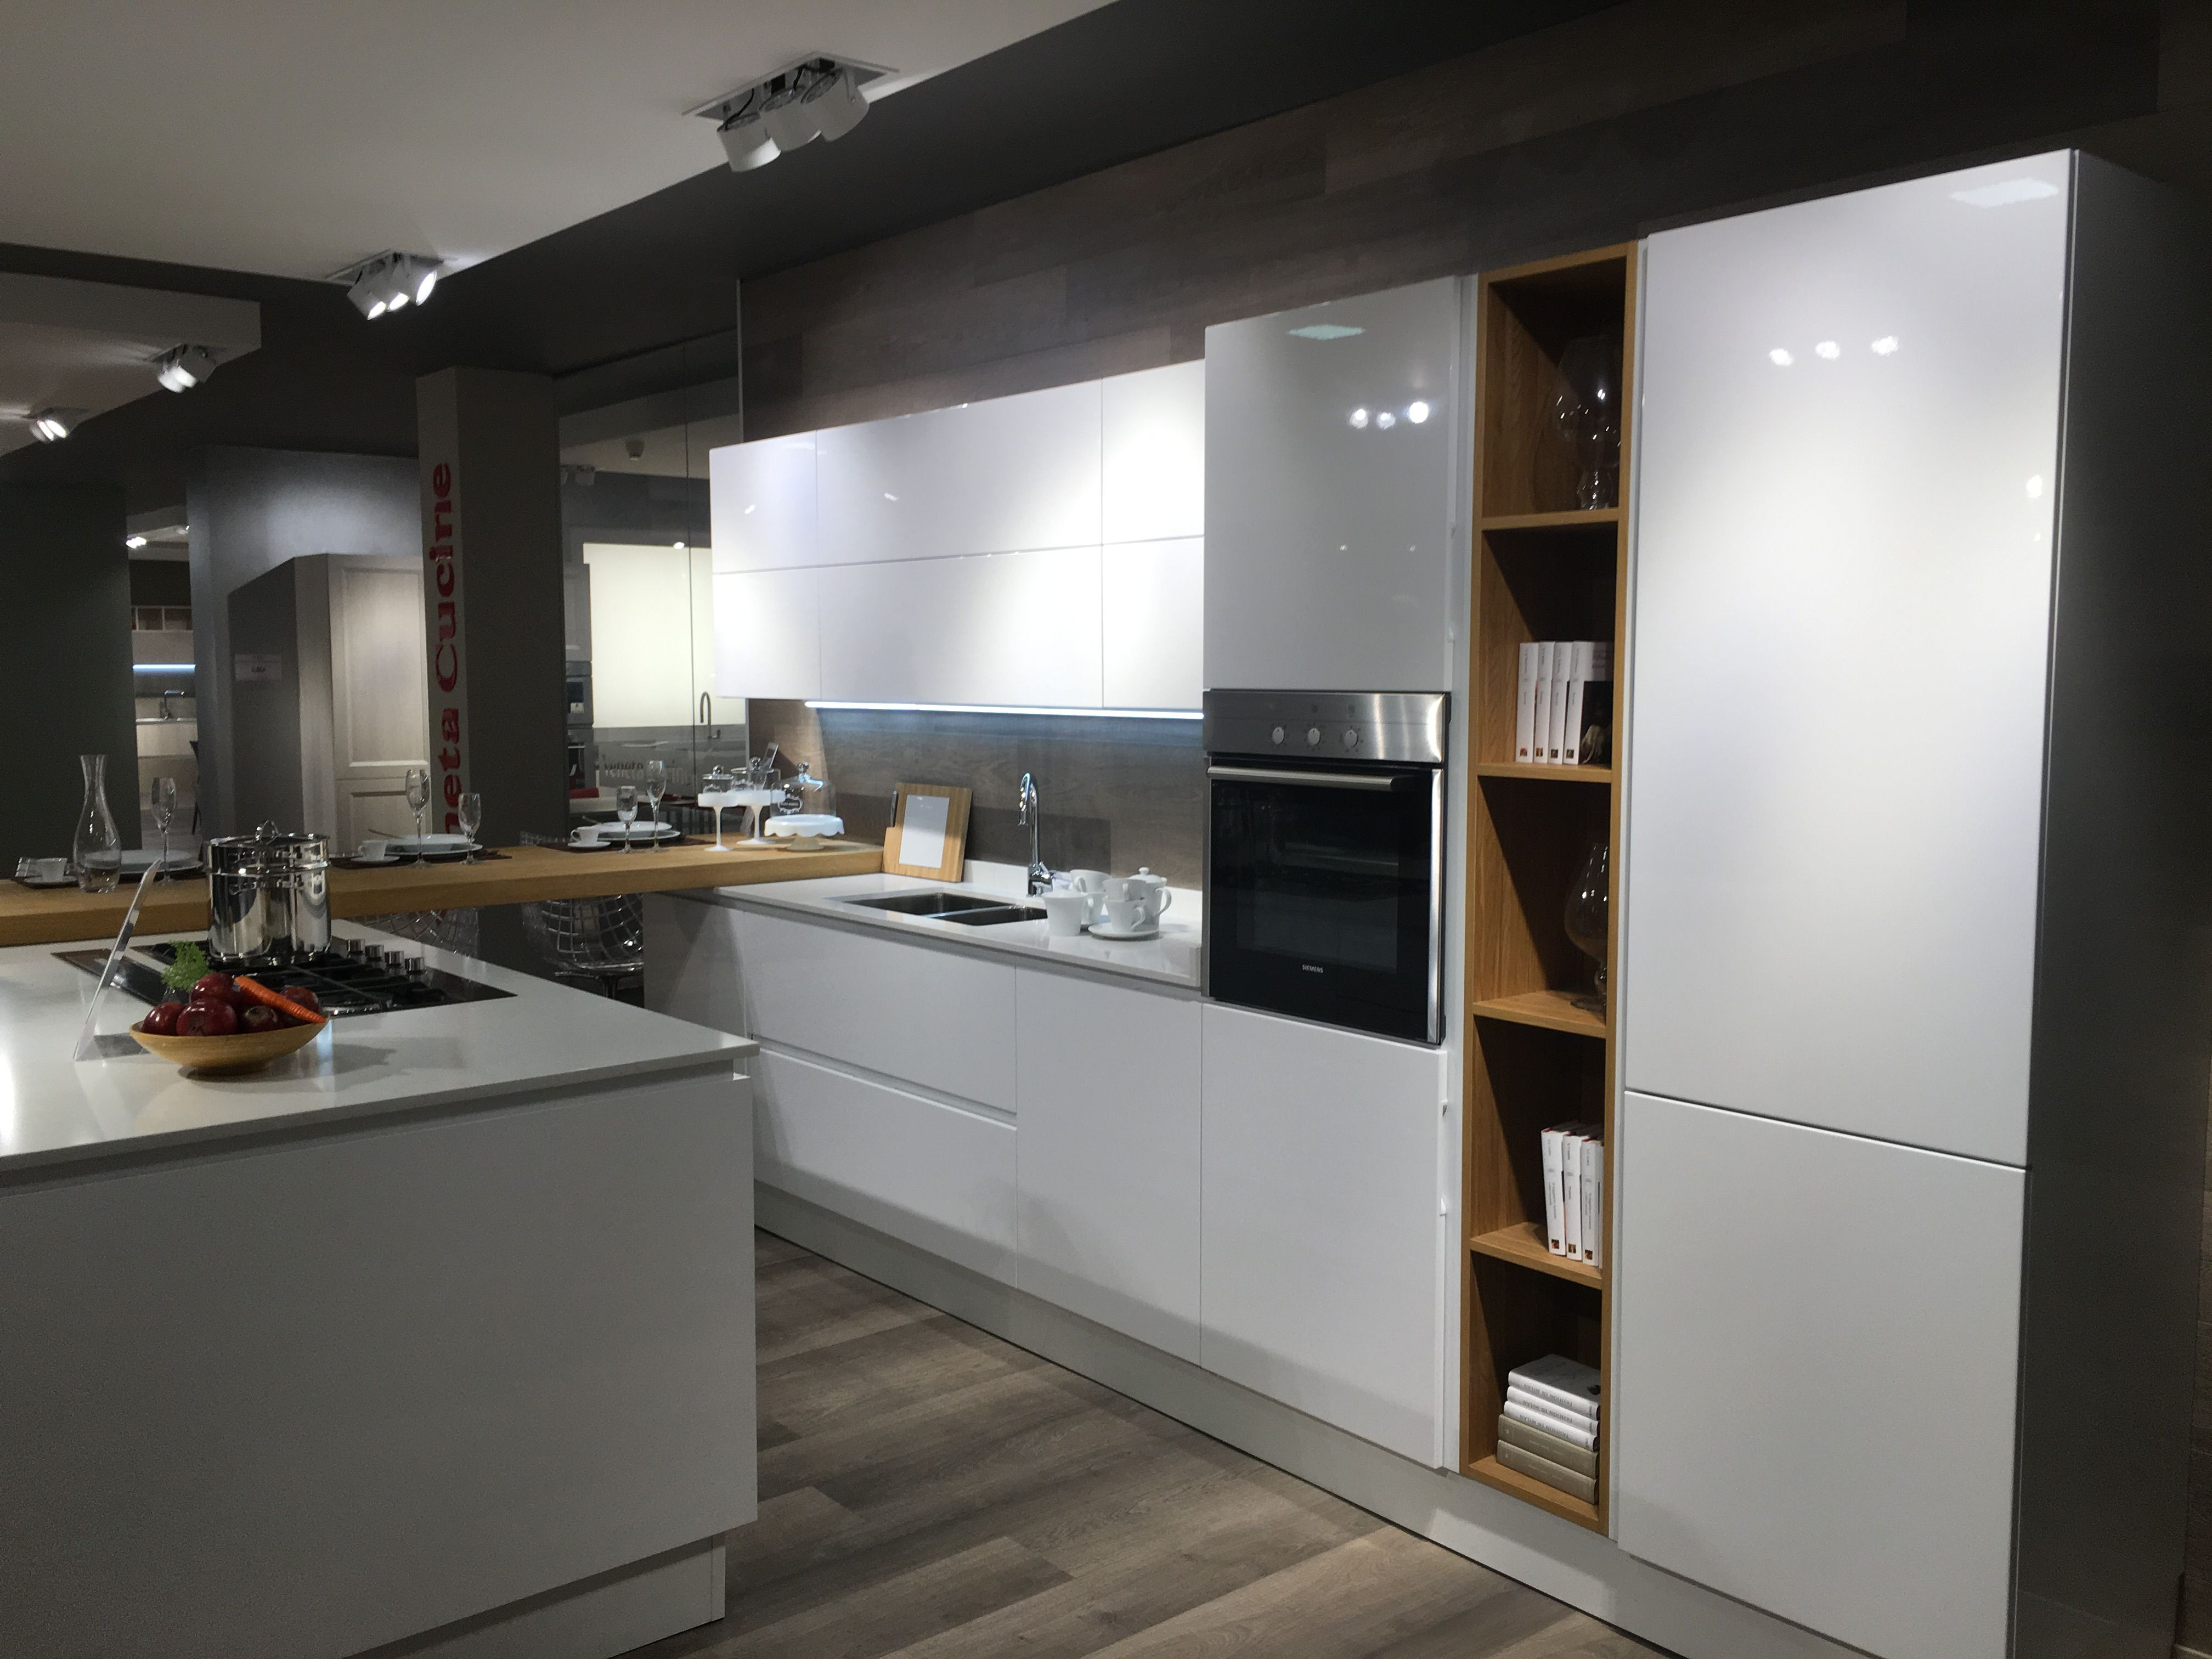 Veneta cucine carrera plus - sereno | Cucine | Home décor, Room e Décor